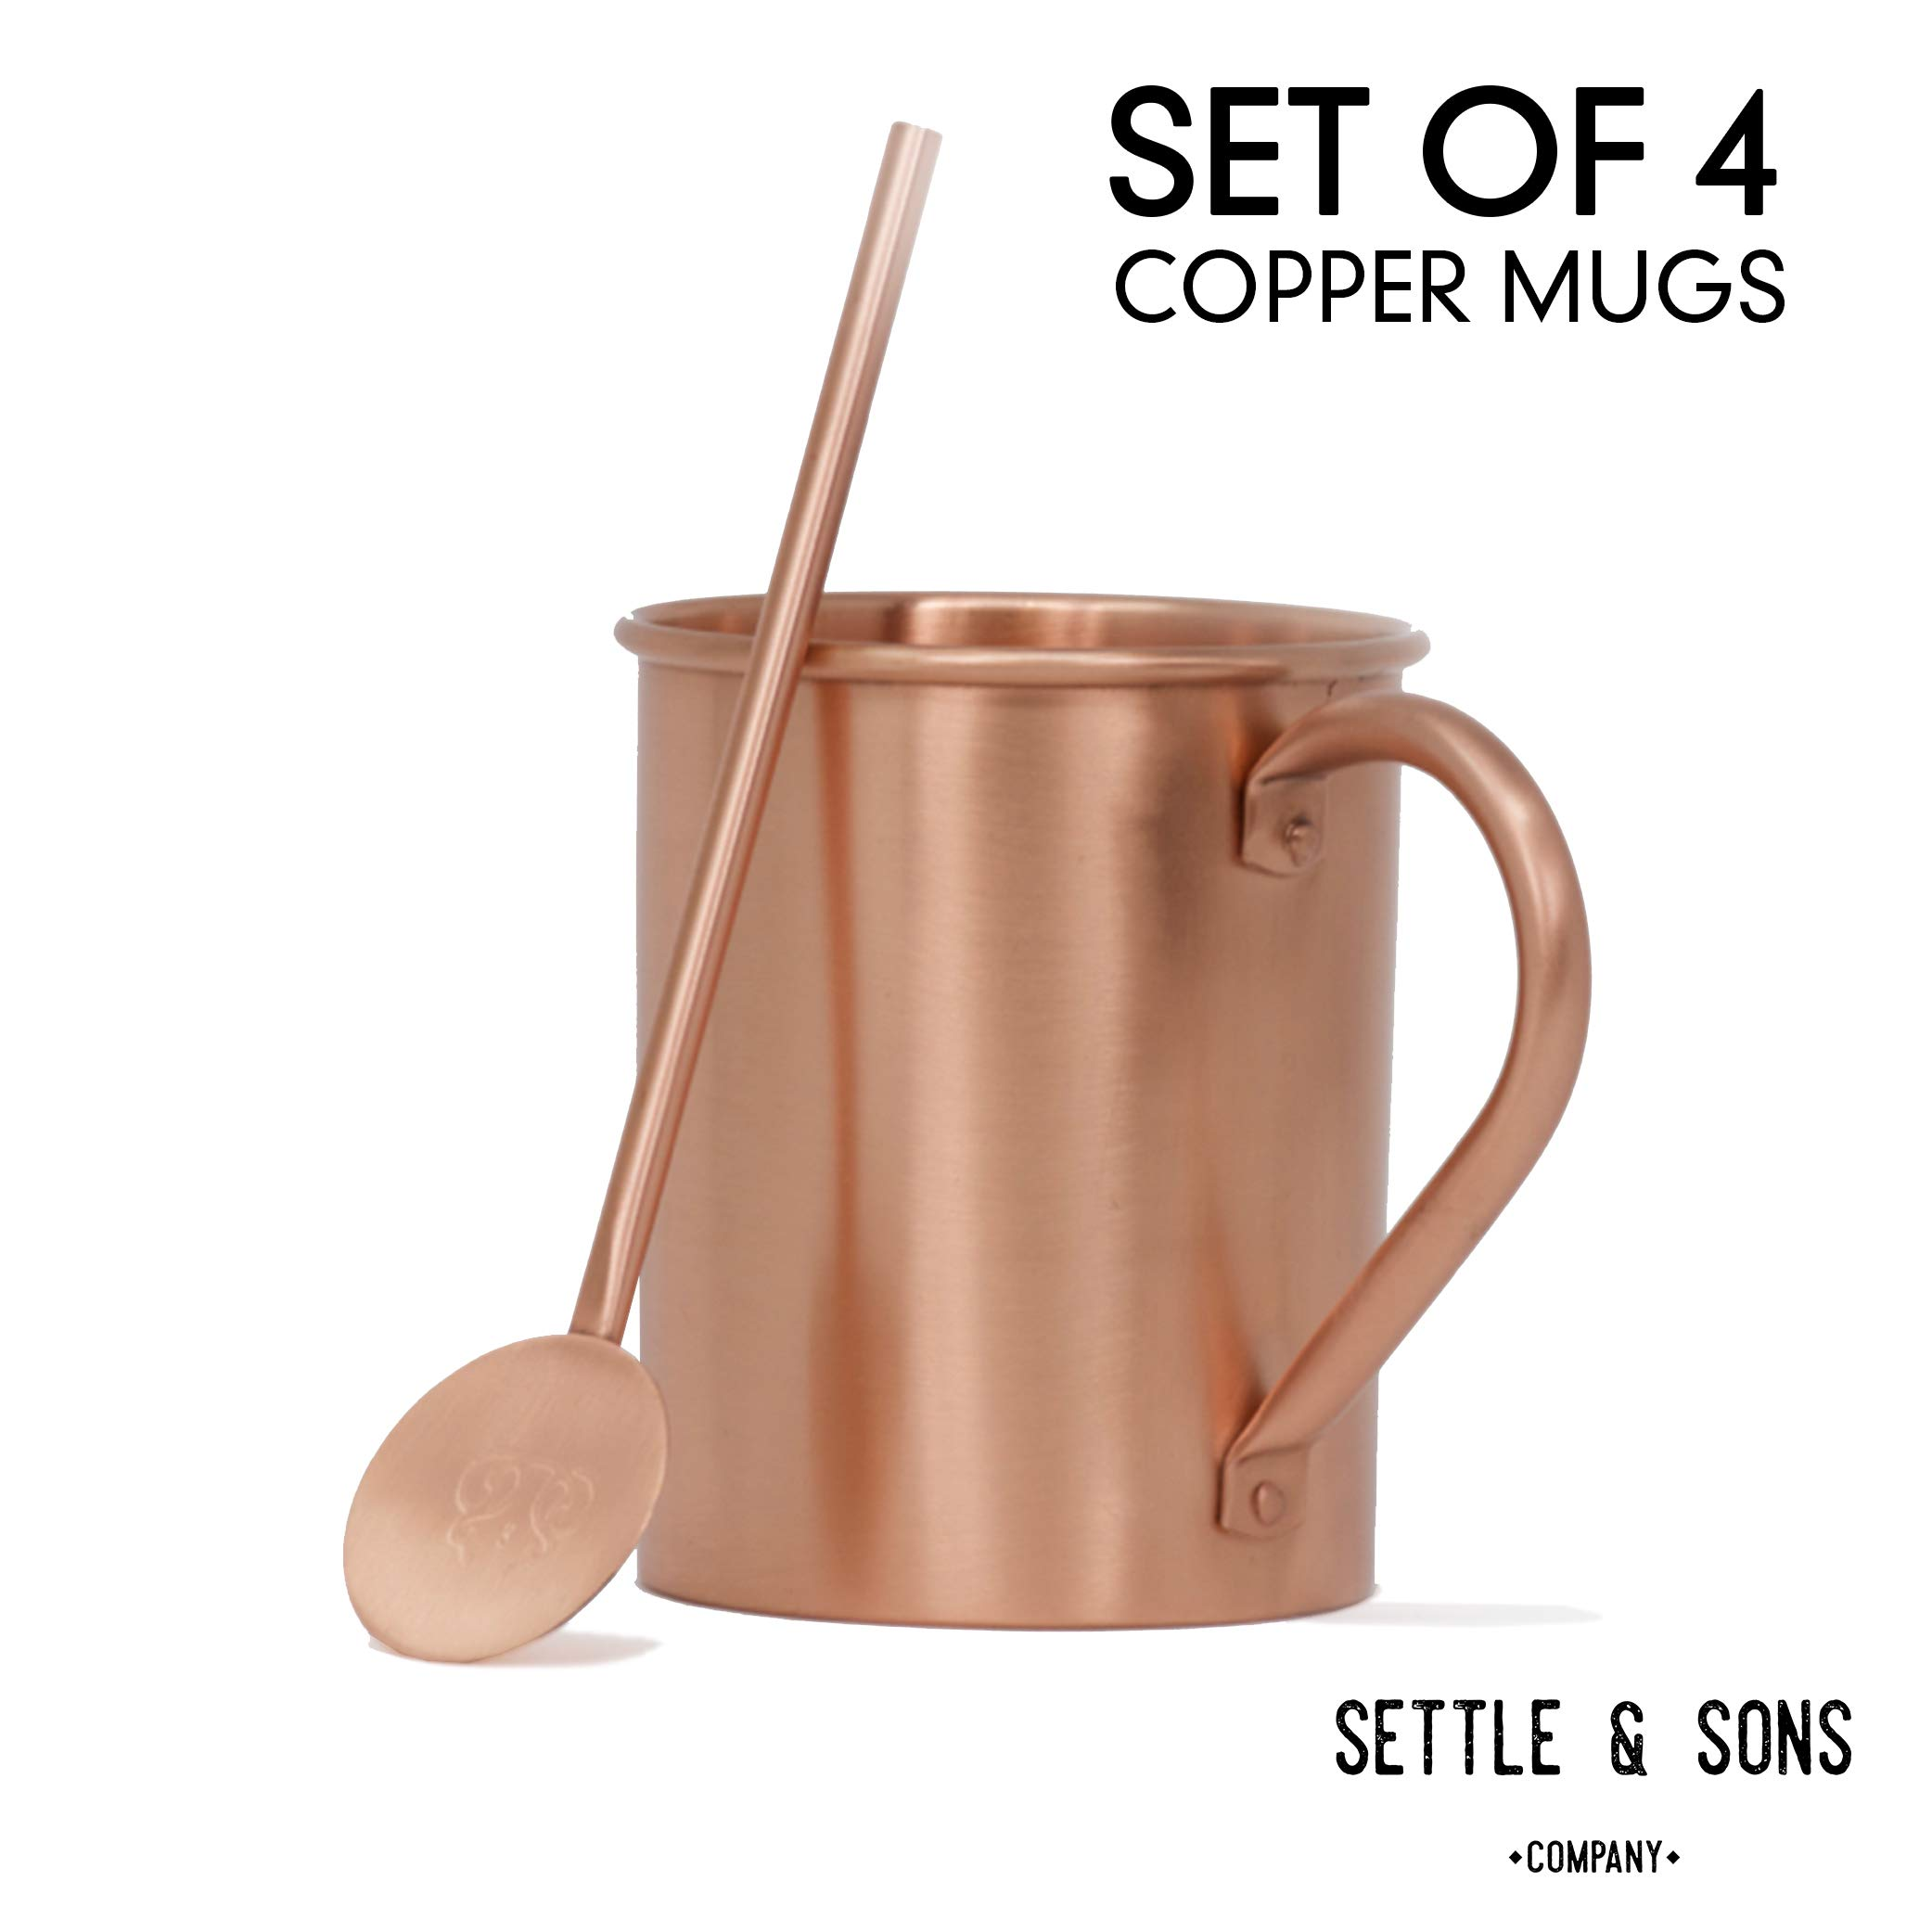 Moscow Mule Copper Mugs Set of 4 - 16 Ounce 100% Solid Copper Mugs and 4 Copper Cocktail Straws